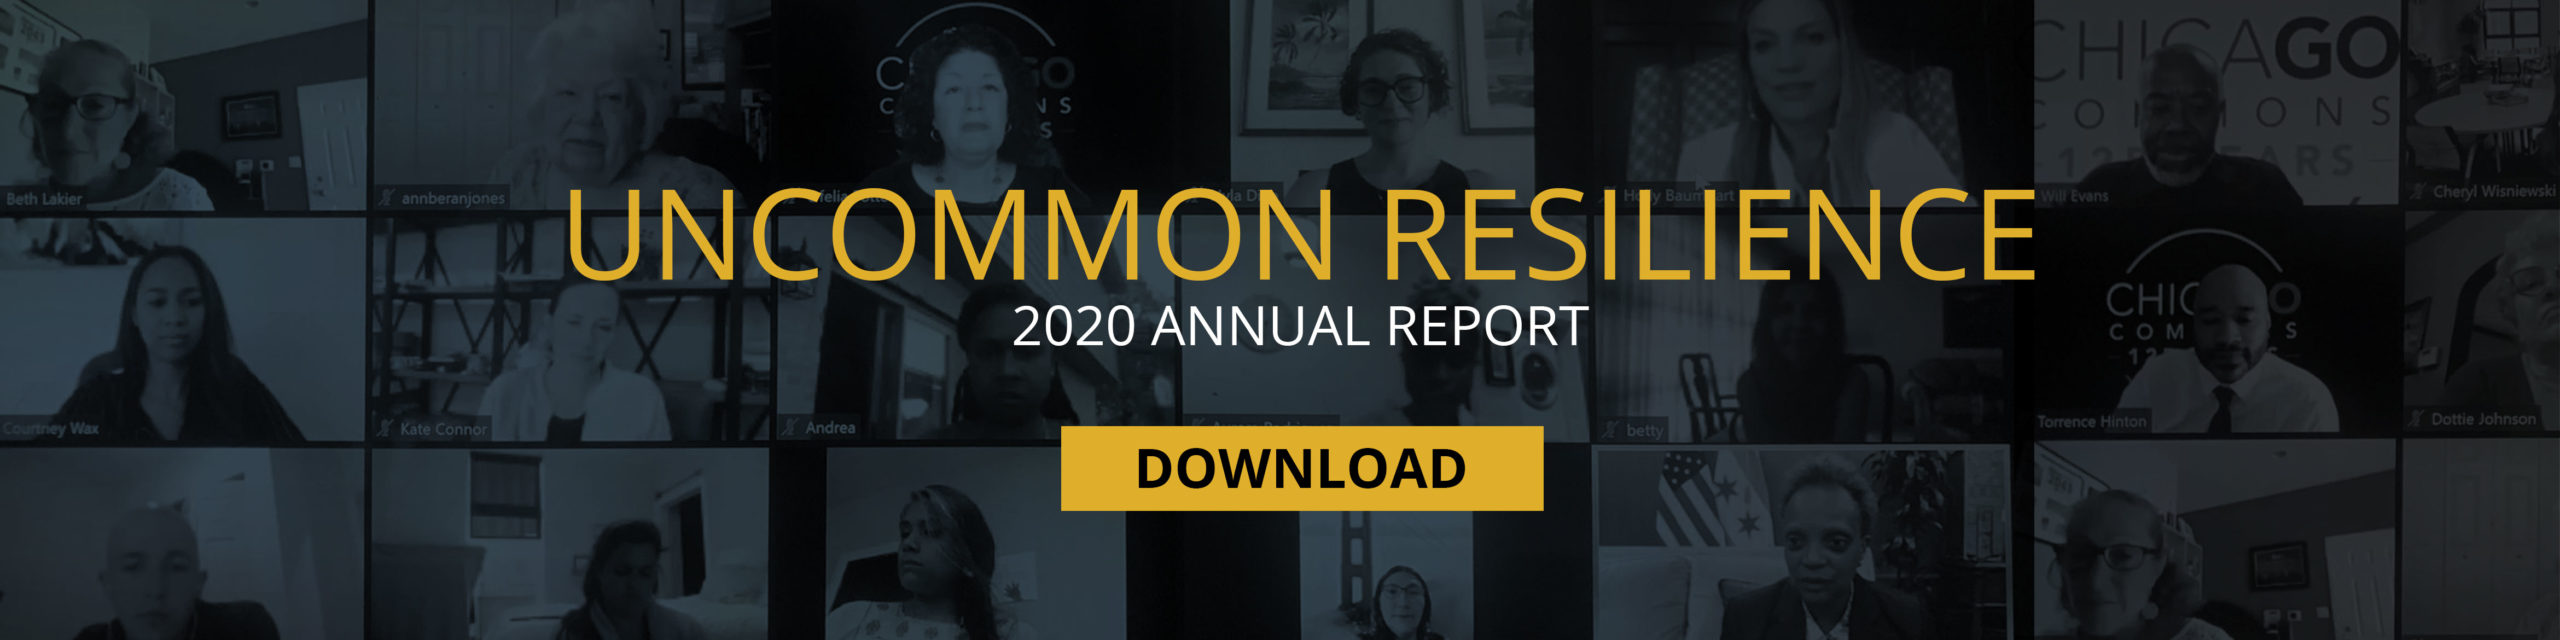 Uncommon Resilience: 2020 Annual Report - Download